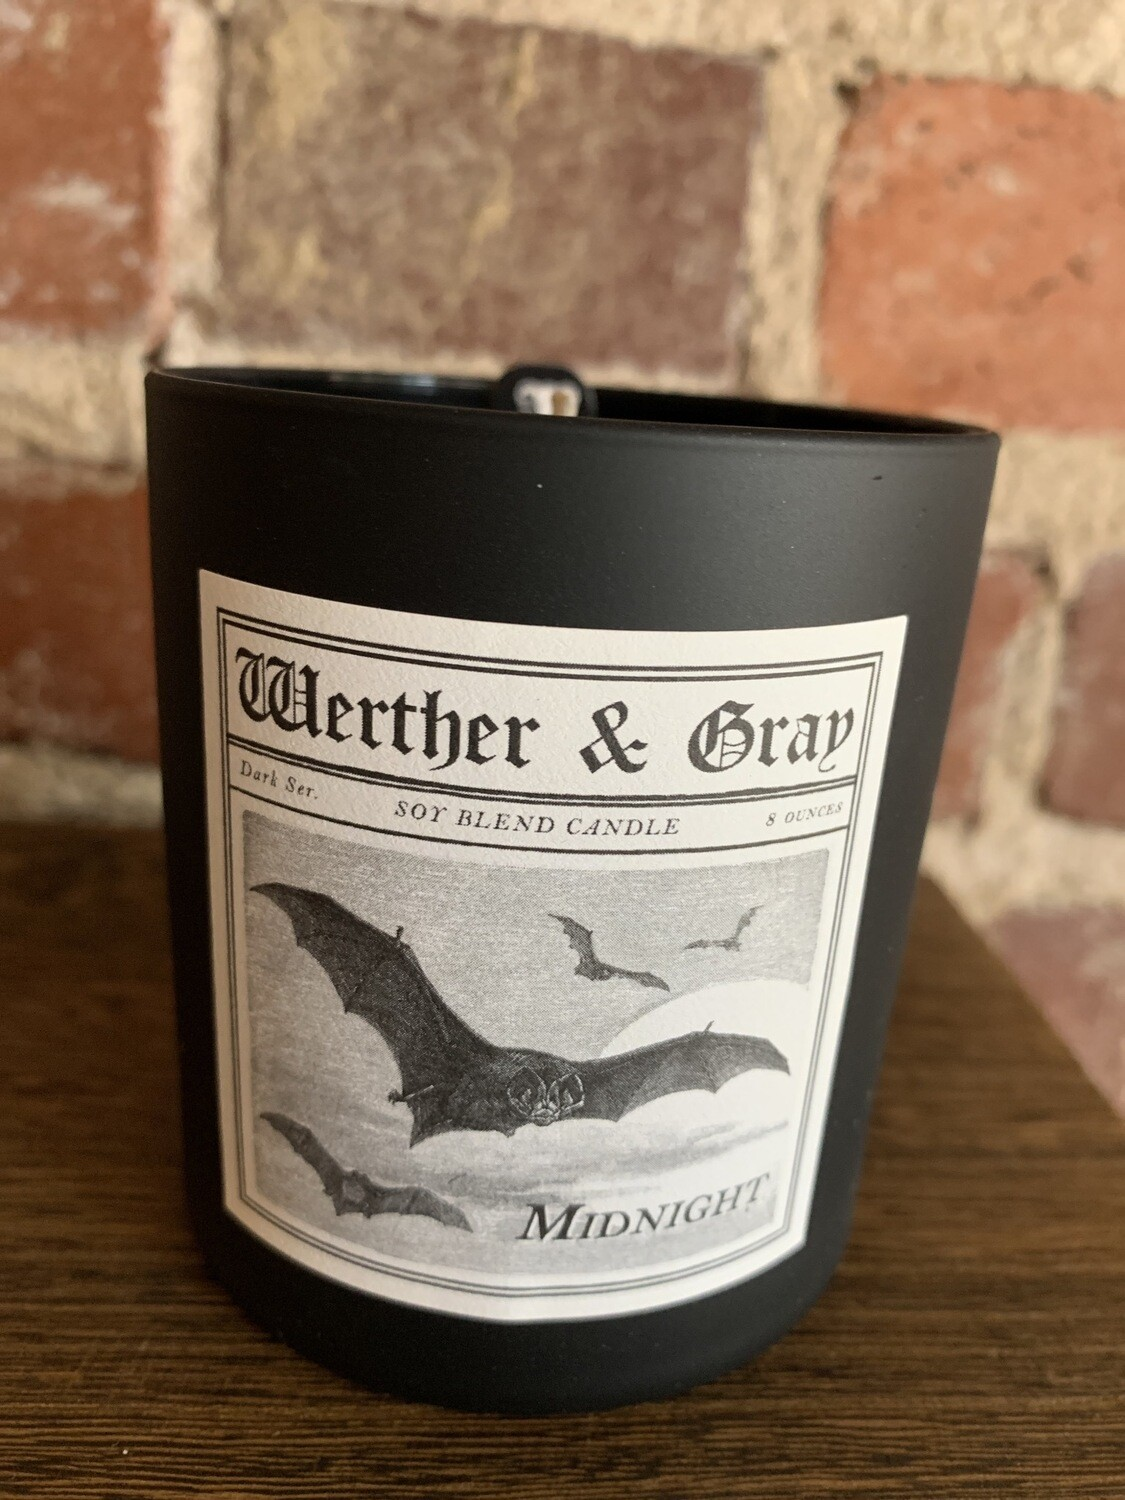 Werther & Gray Midnight Candle